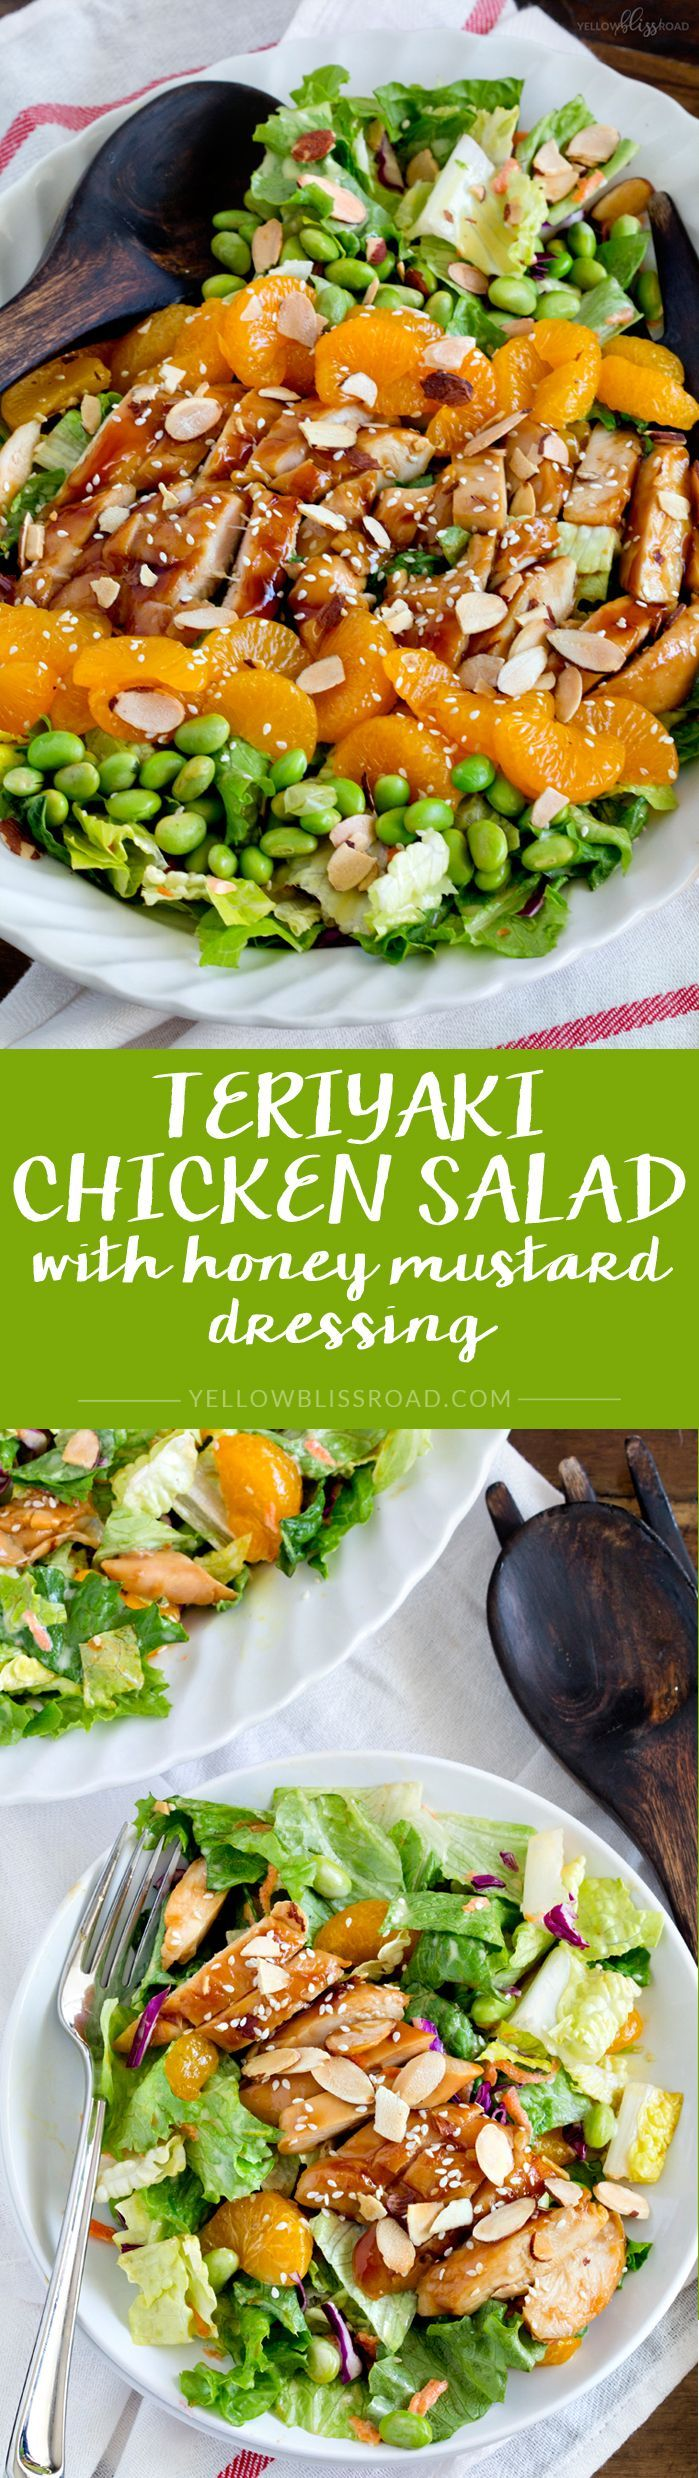 Teriyaki Chicken Salad with Honey Mustard Dressing - Red Robin Banzai Salad Copycat